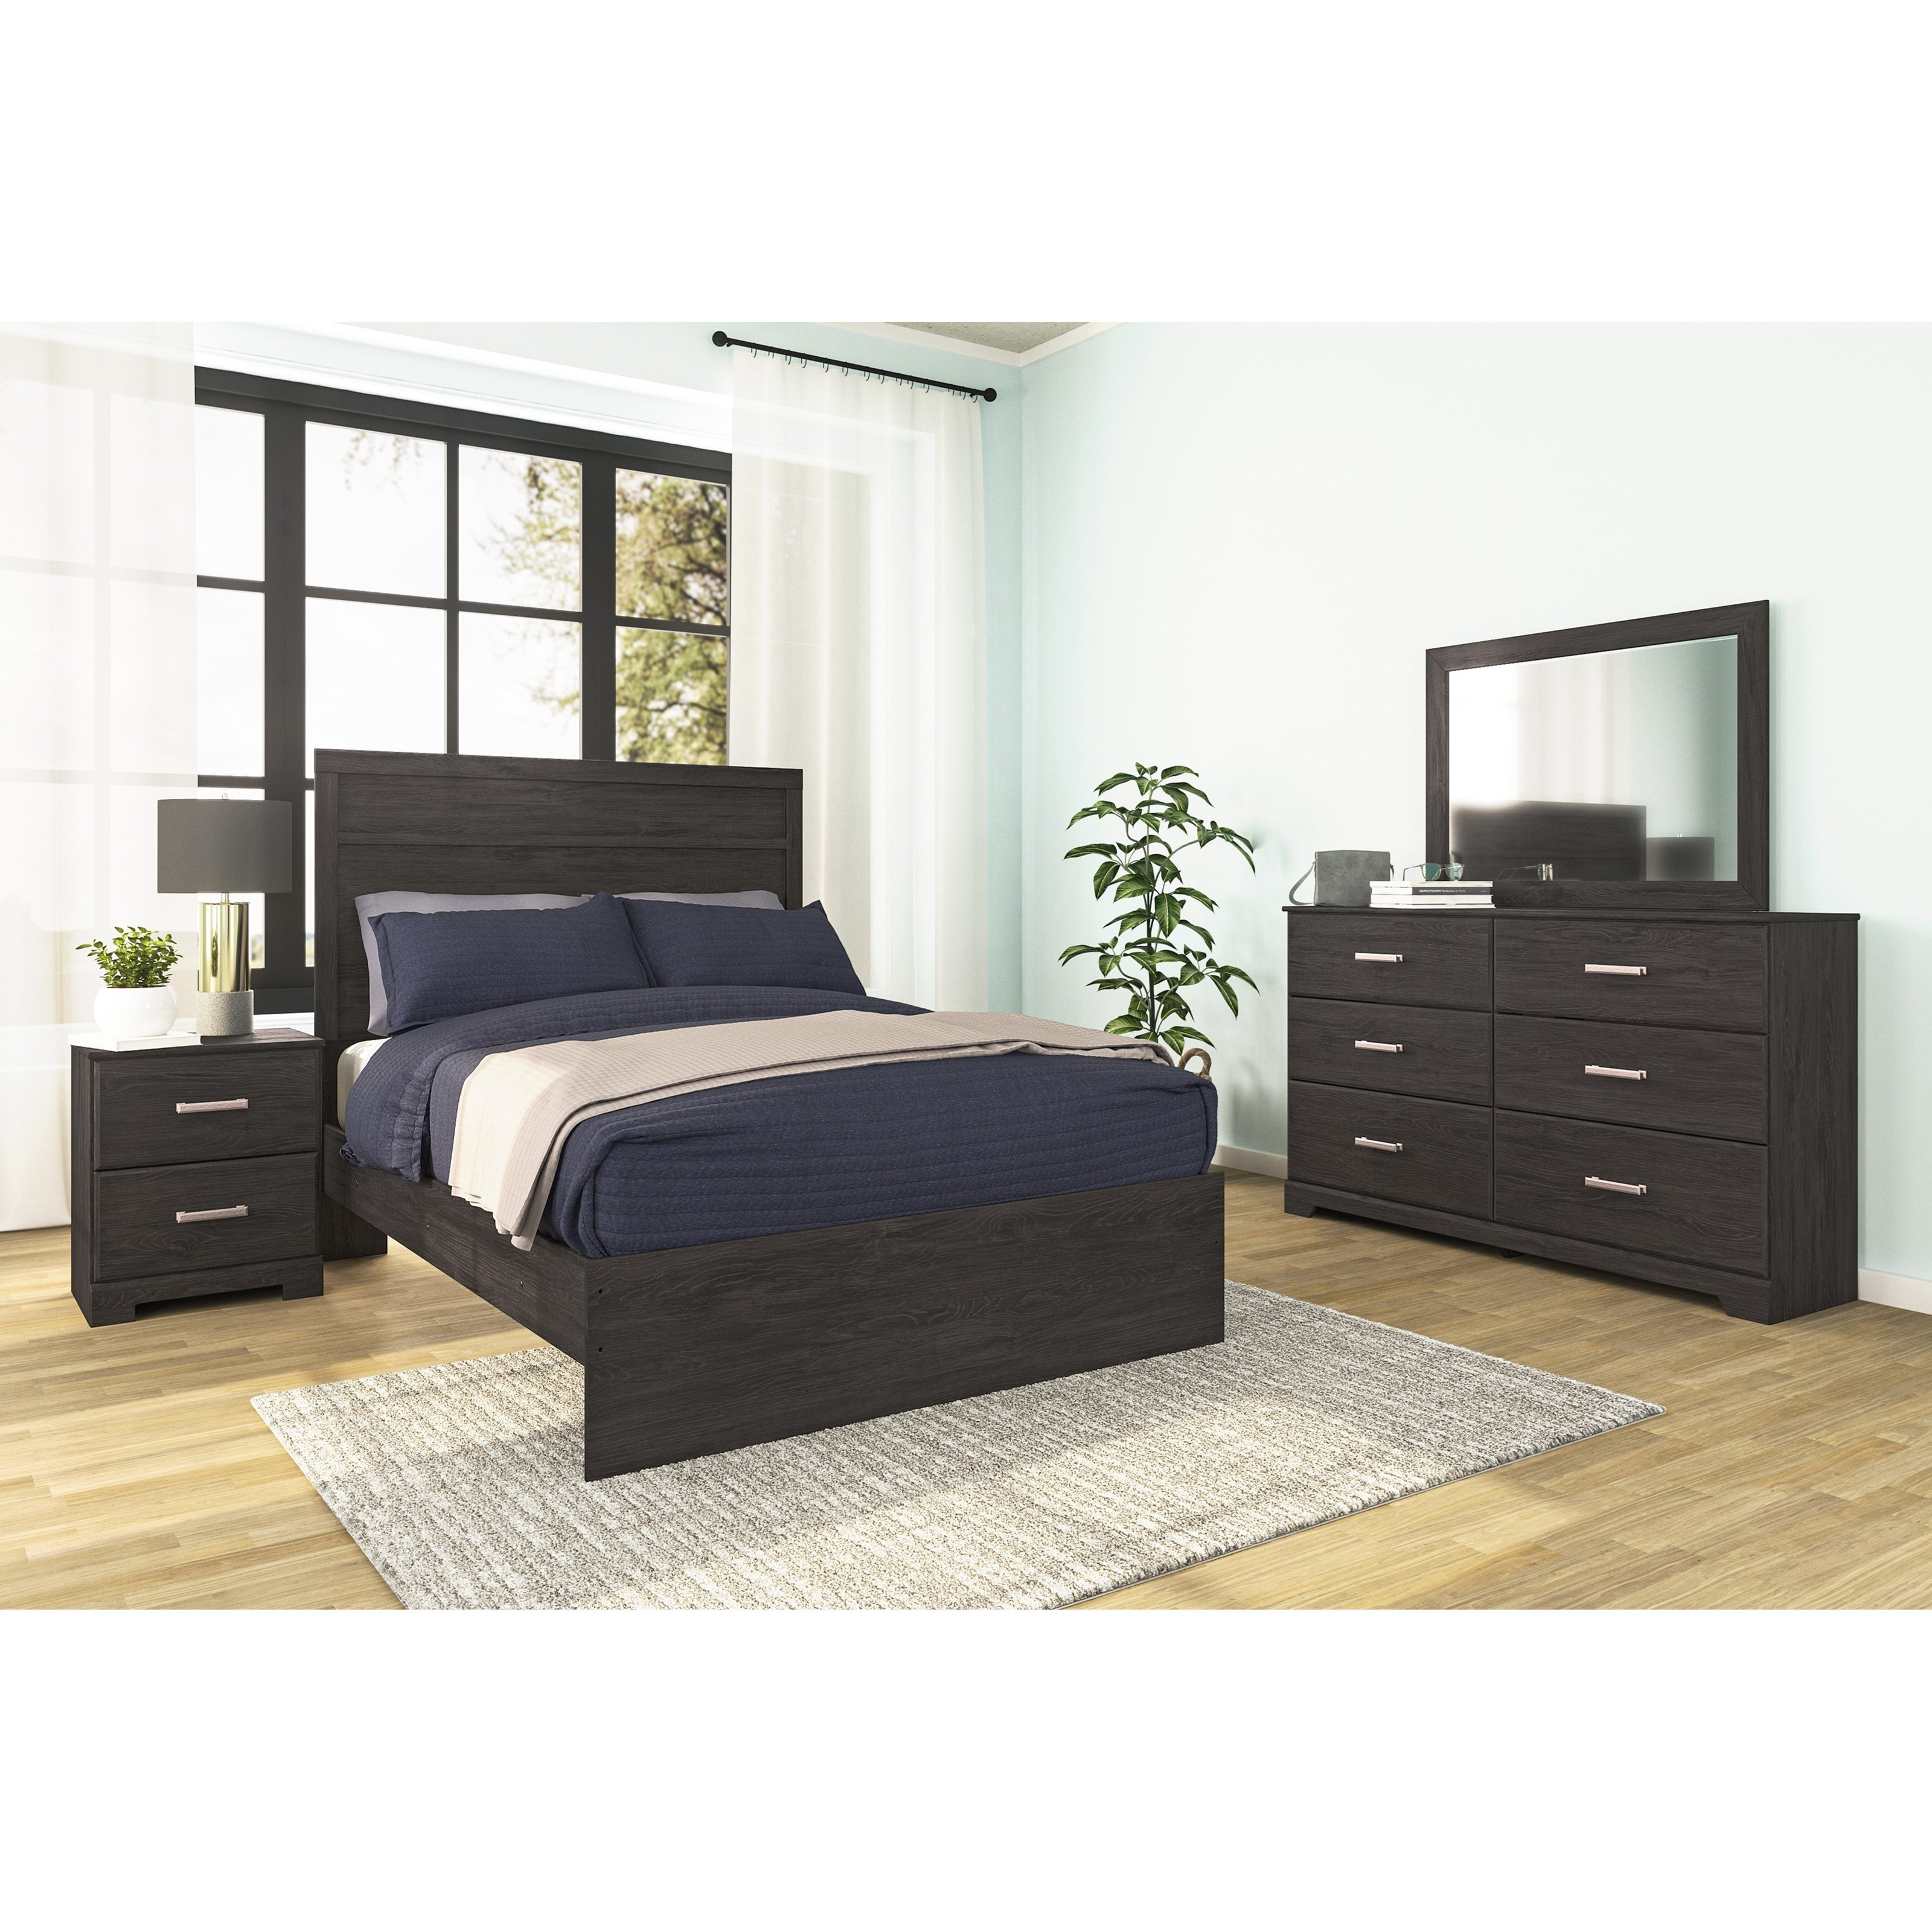 Belachime Full Bedroom Group by Signature Design by Ashley at Sparks HomeStore